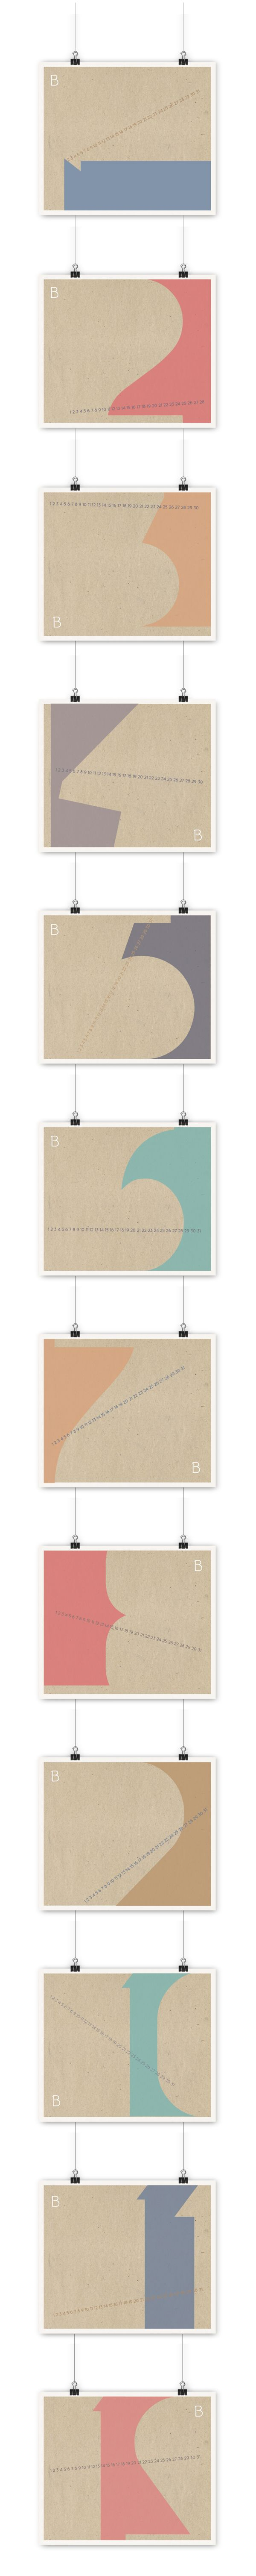 BIO calendar 2013 by kamila figura, via Behance